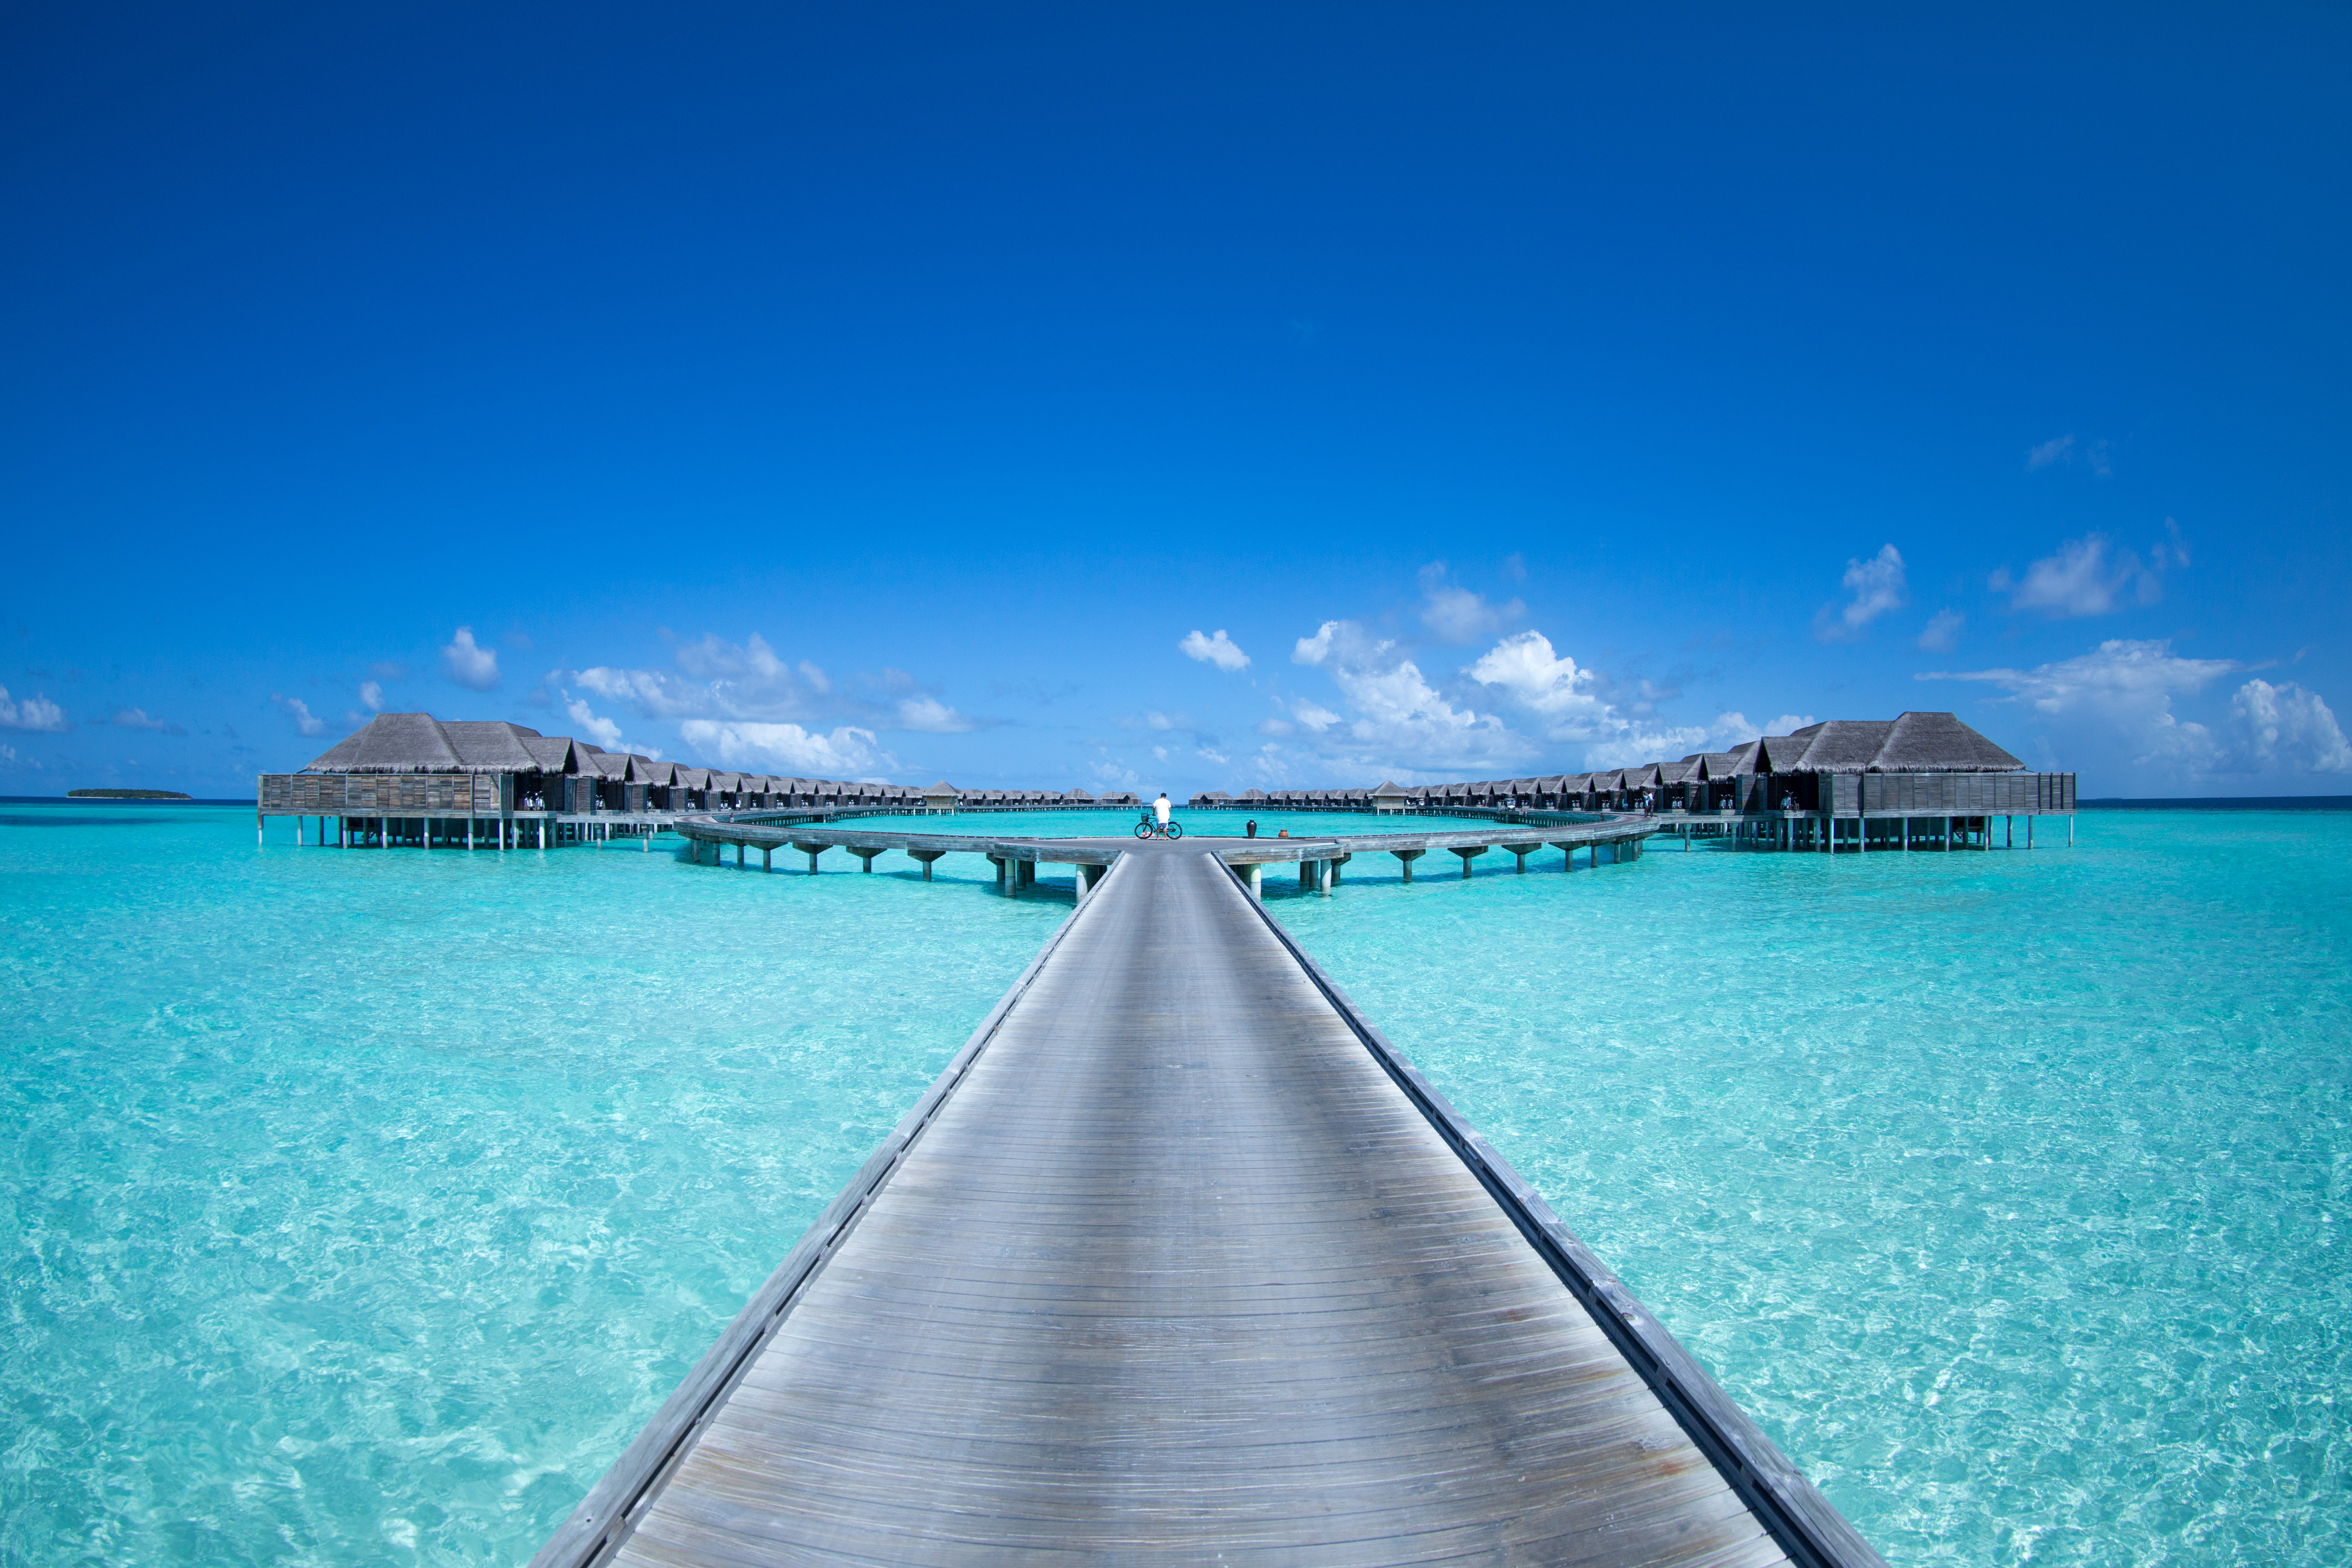 100 Maldives Pictures Hd Scenic Travel Photos